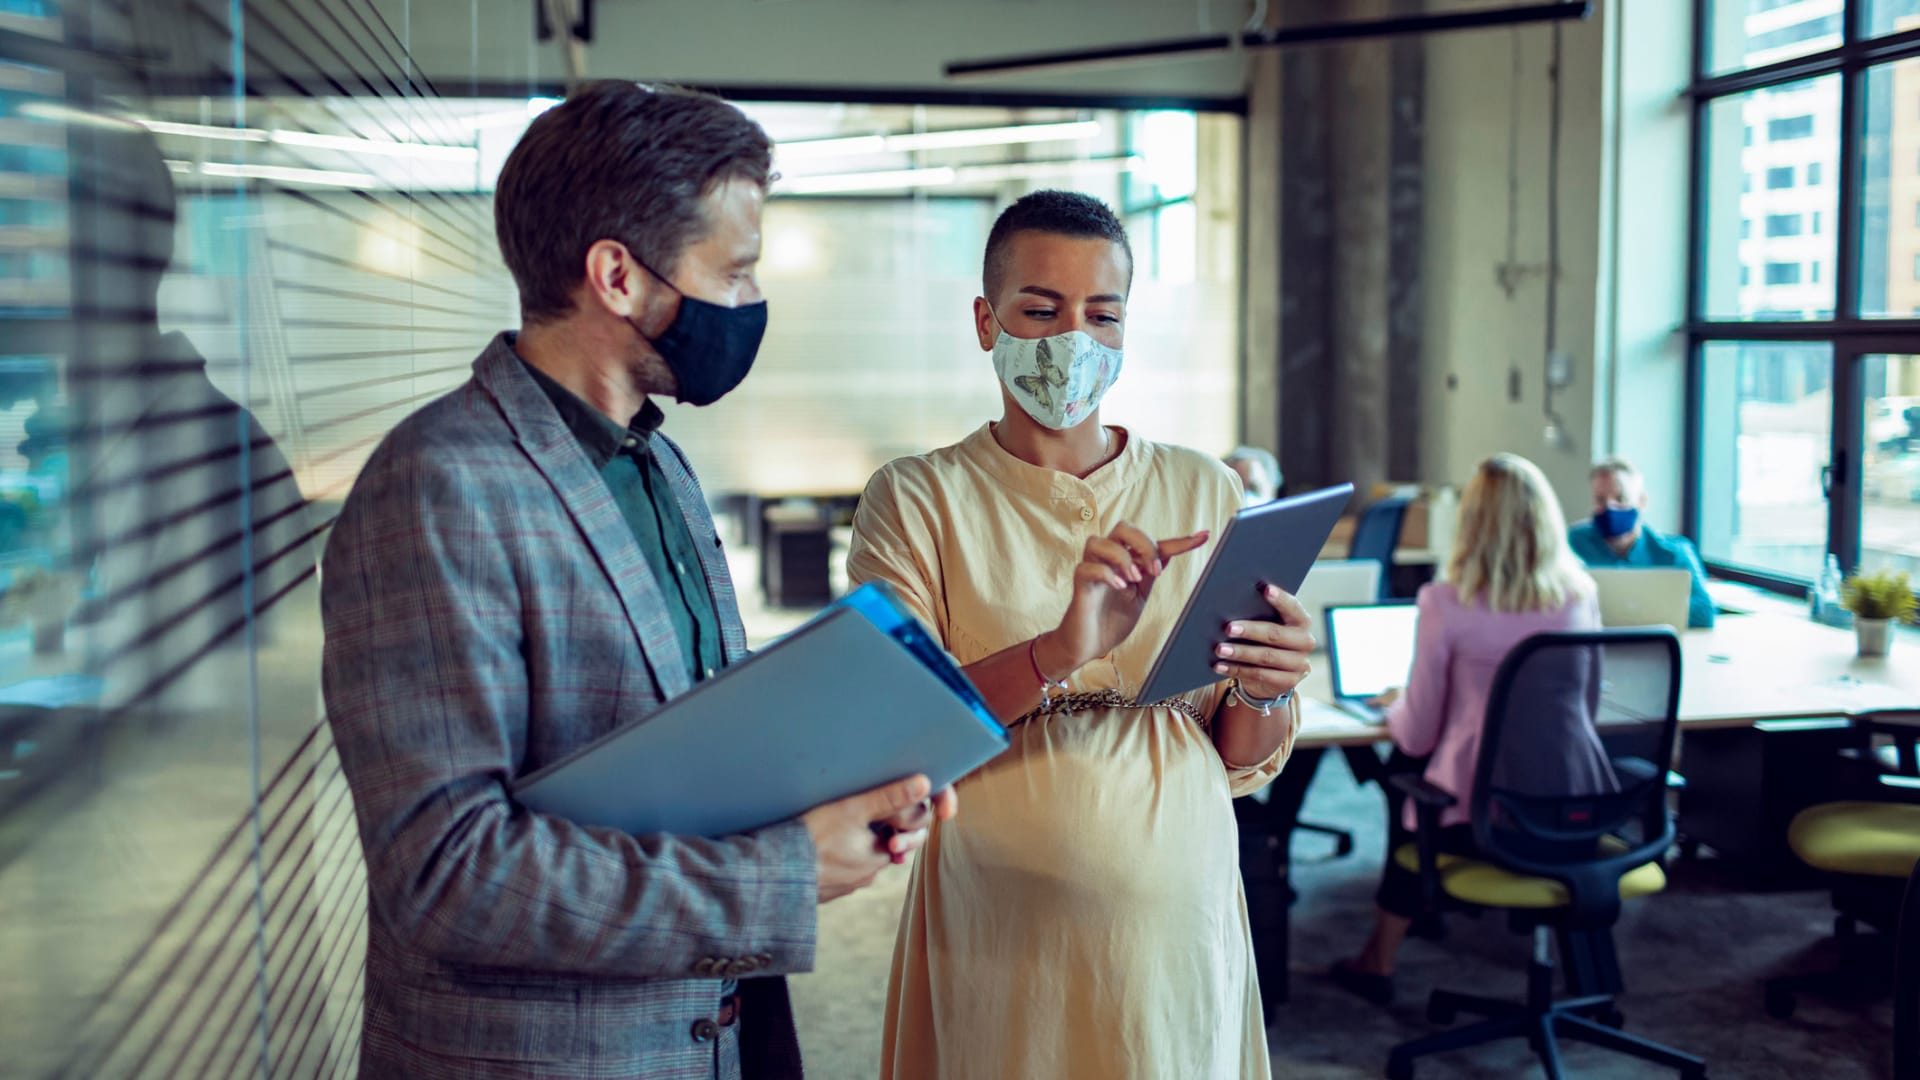 3 Critical Metrics You Need to Assess the Overall Health of Your Workplace